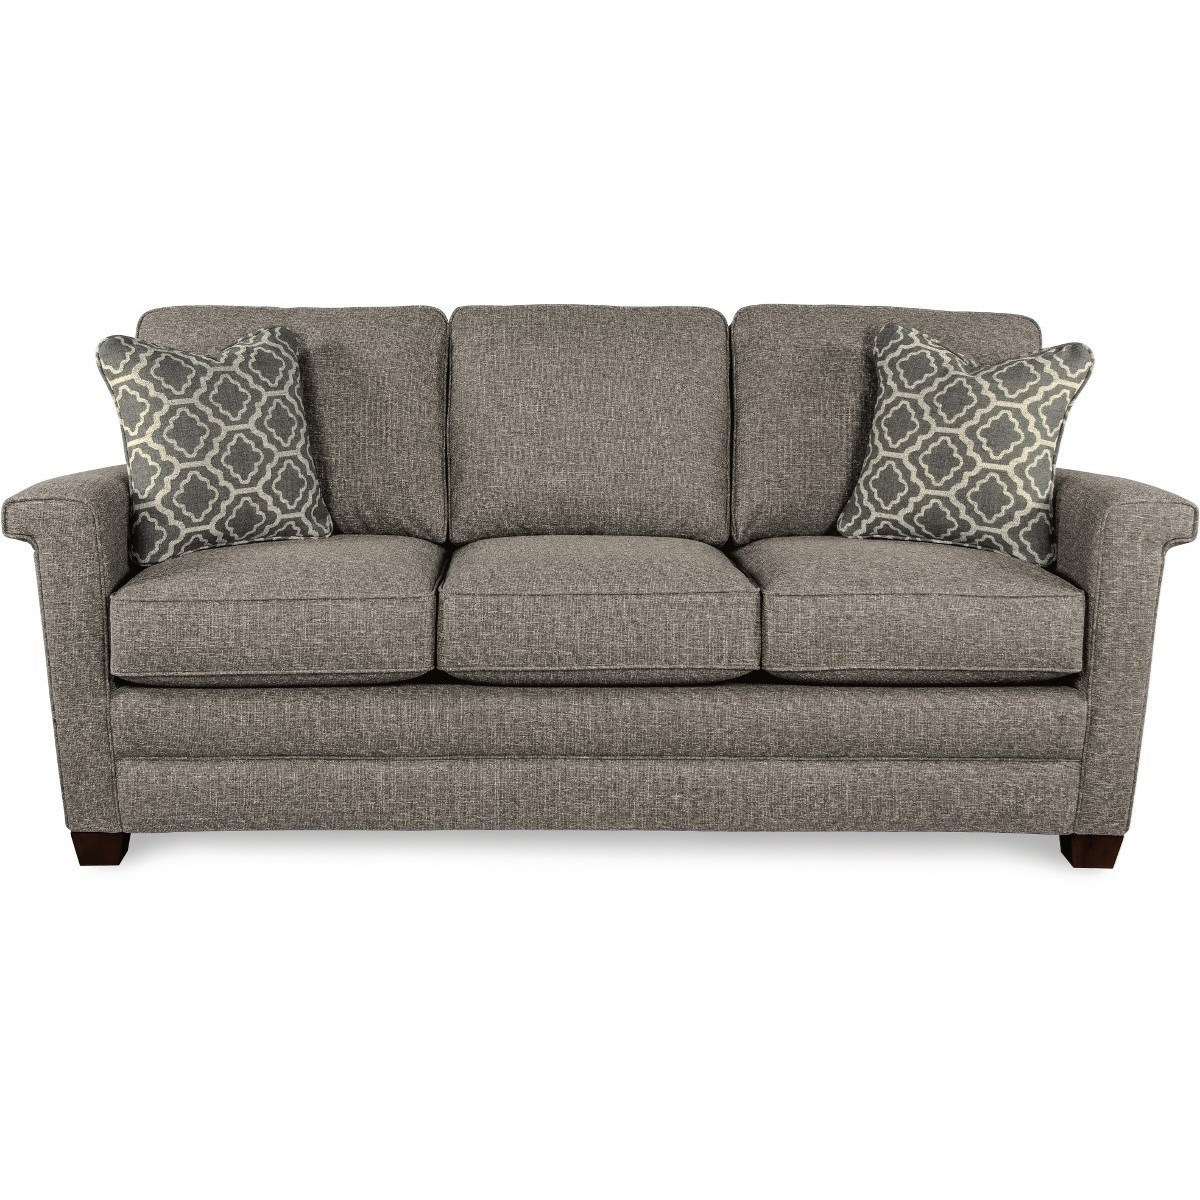 - La-Z-Boy Bexley Contemporary Queen Sleeper Sofa Conlin's